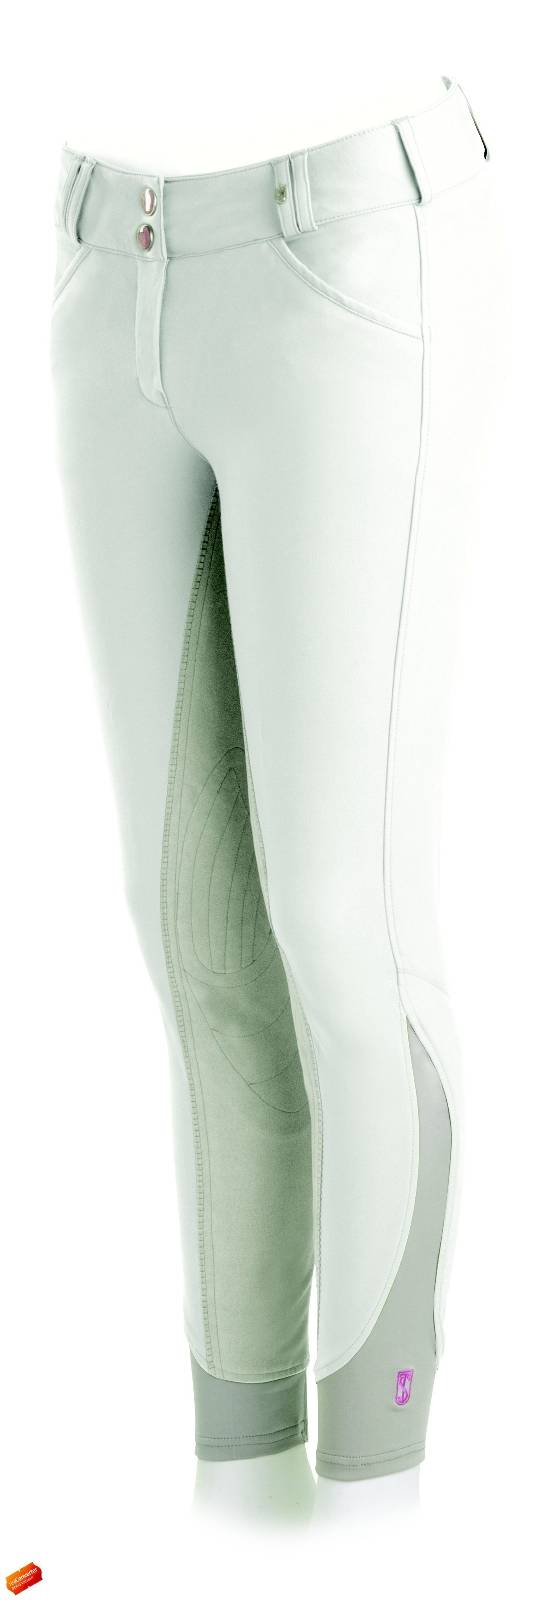 Outlet - Tredstep Rosa Breeches - Ladies, Full Seat, 30 Long, White